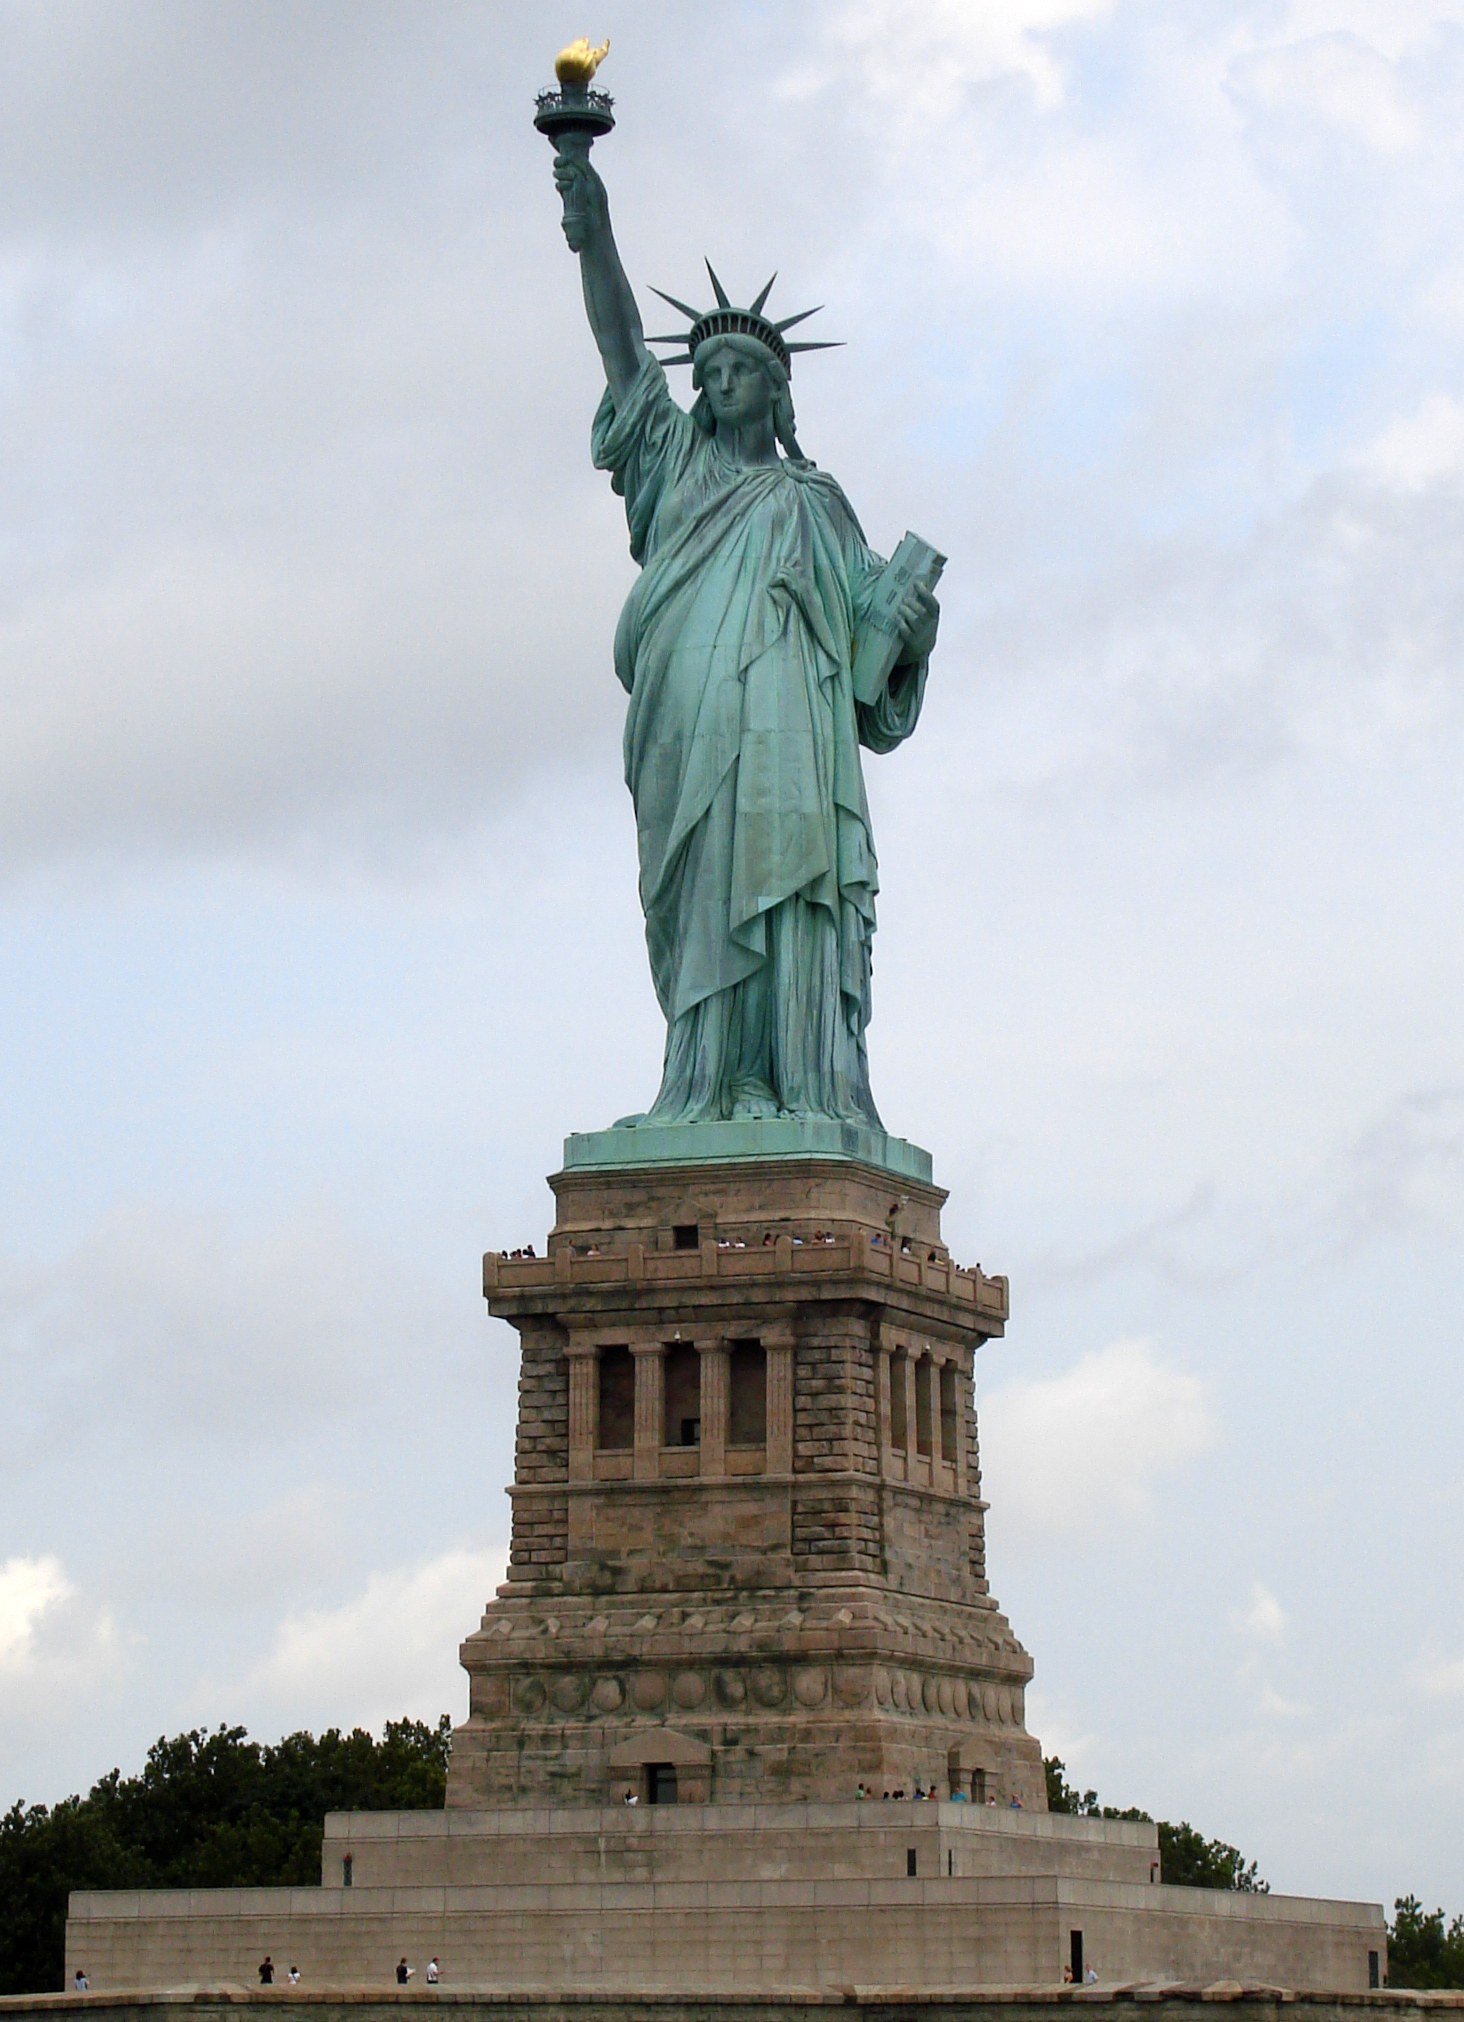 http://upload.wikimedia.org/wikipedia/commons/a/a1/Statue_of_Liberty_7.jpg